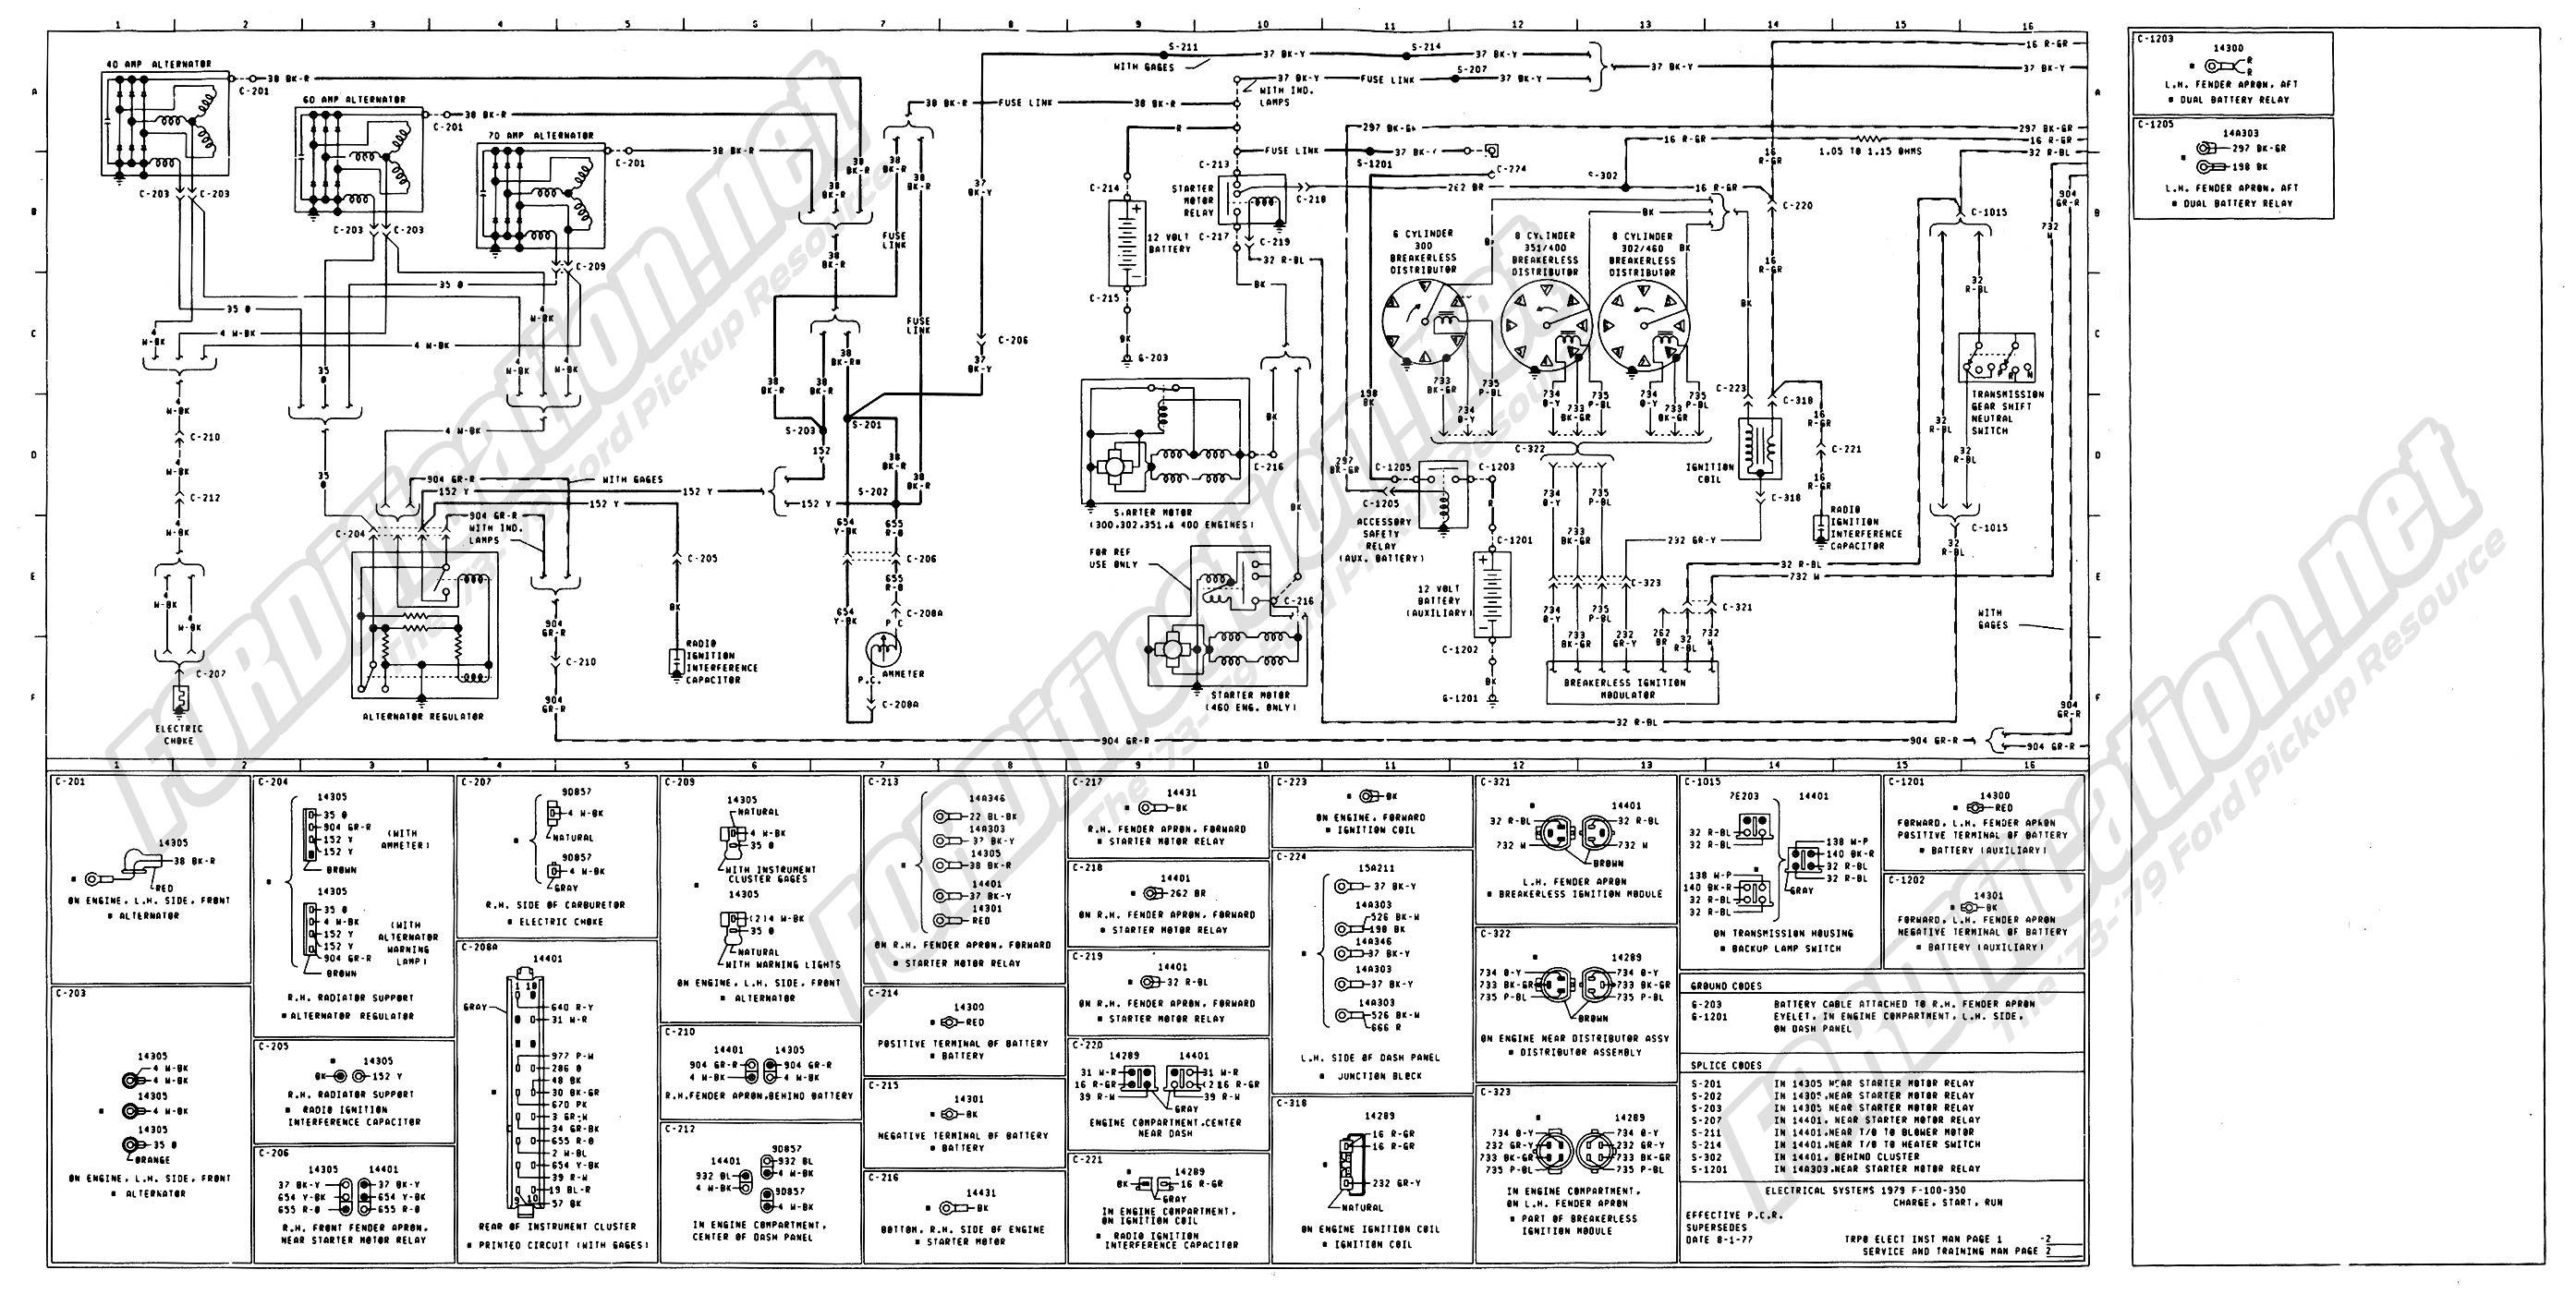 1975 Ford F100 Diagrams Starting Know About Wiring Diagram \u2022 Ford  Parts Catalog With Diagrams 1975 Ford F100 Diagrams